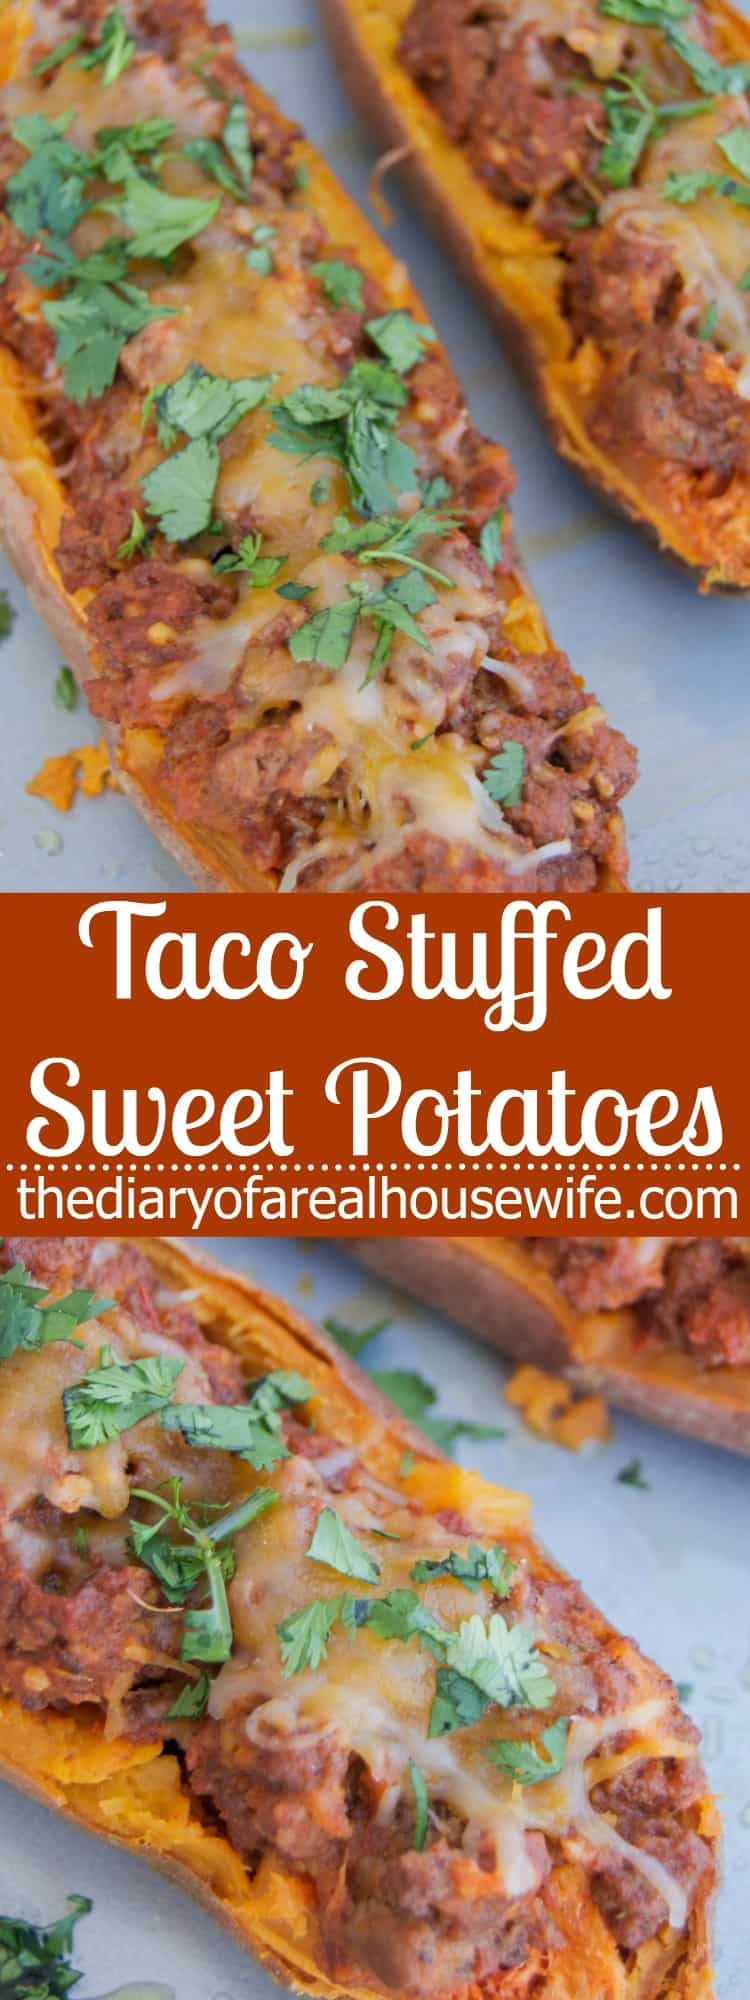 Taco Stuffed Sweet Potatoes - The Diary of a Real Housewife